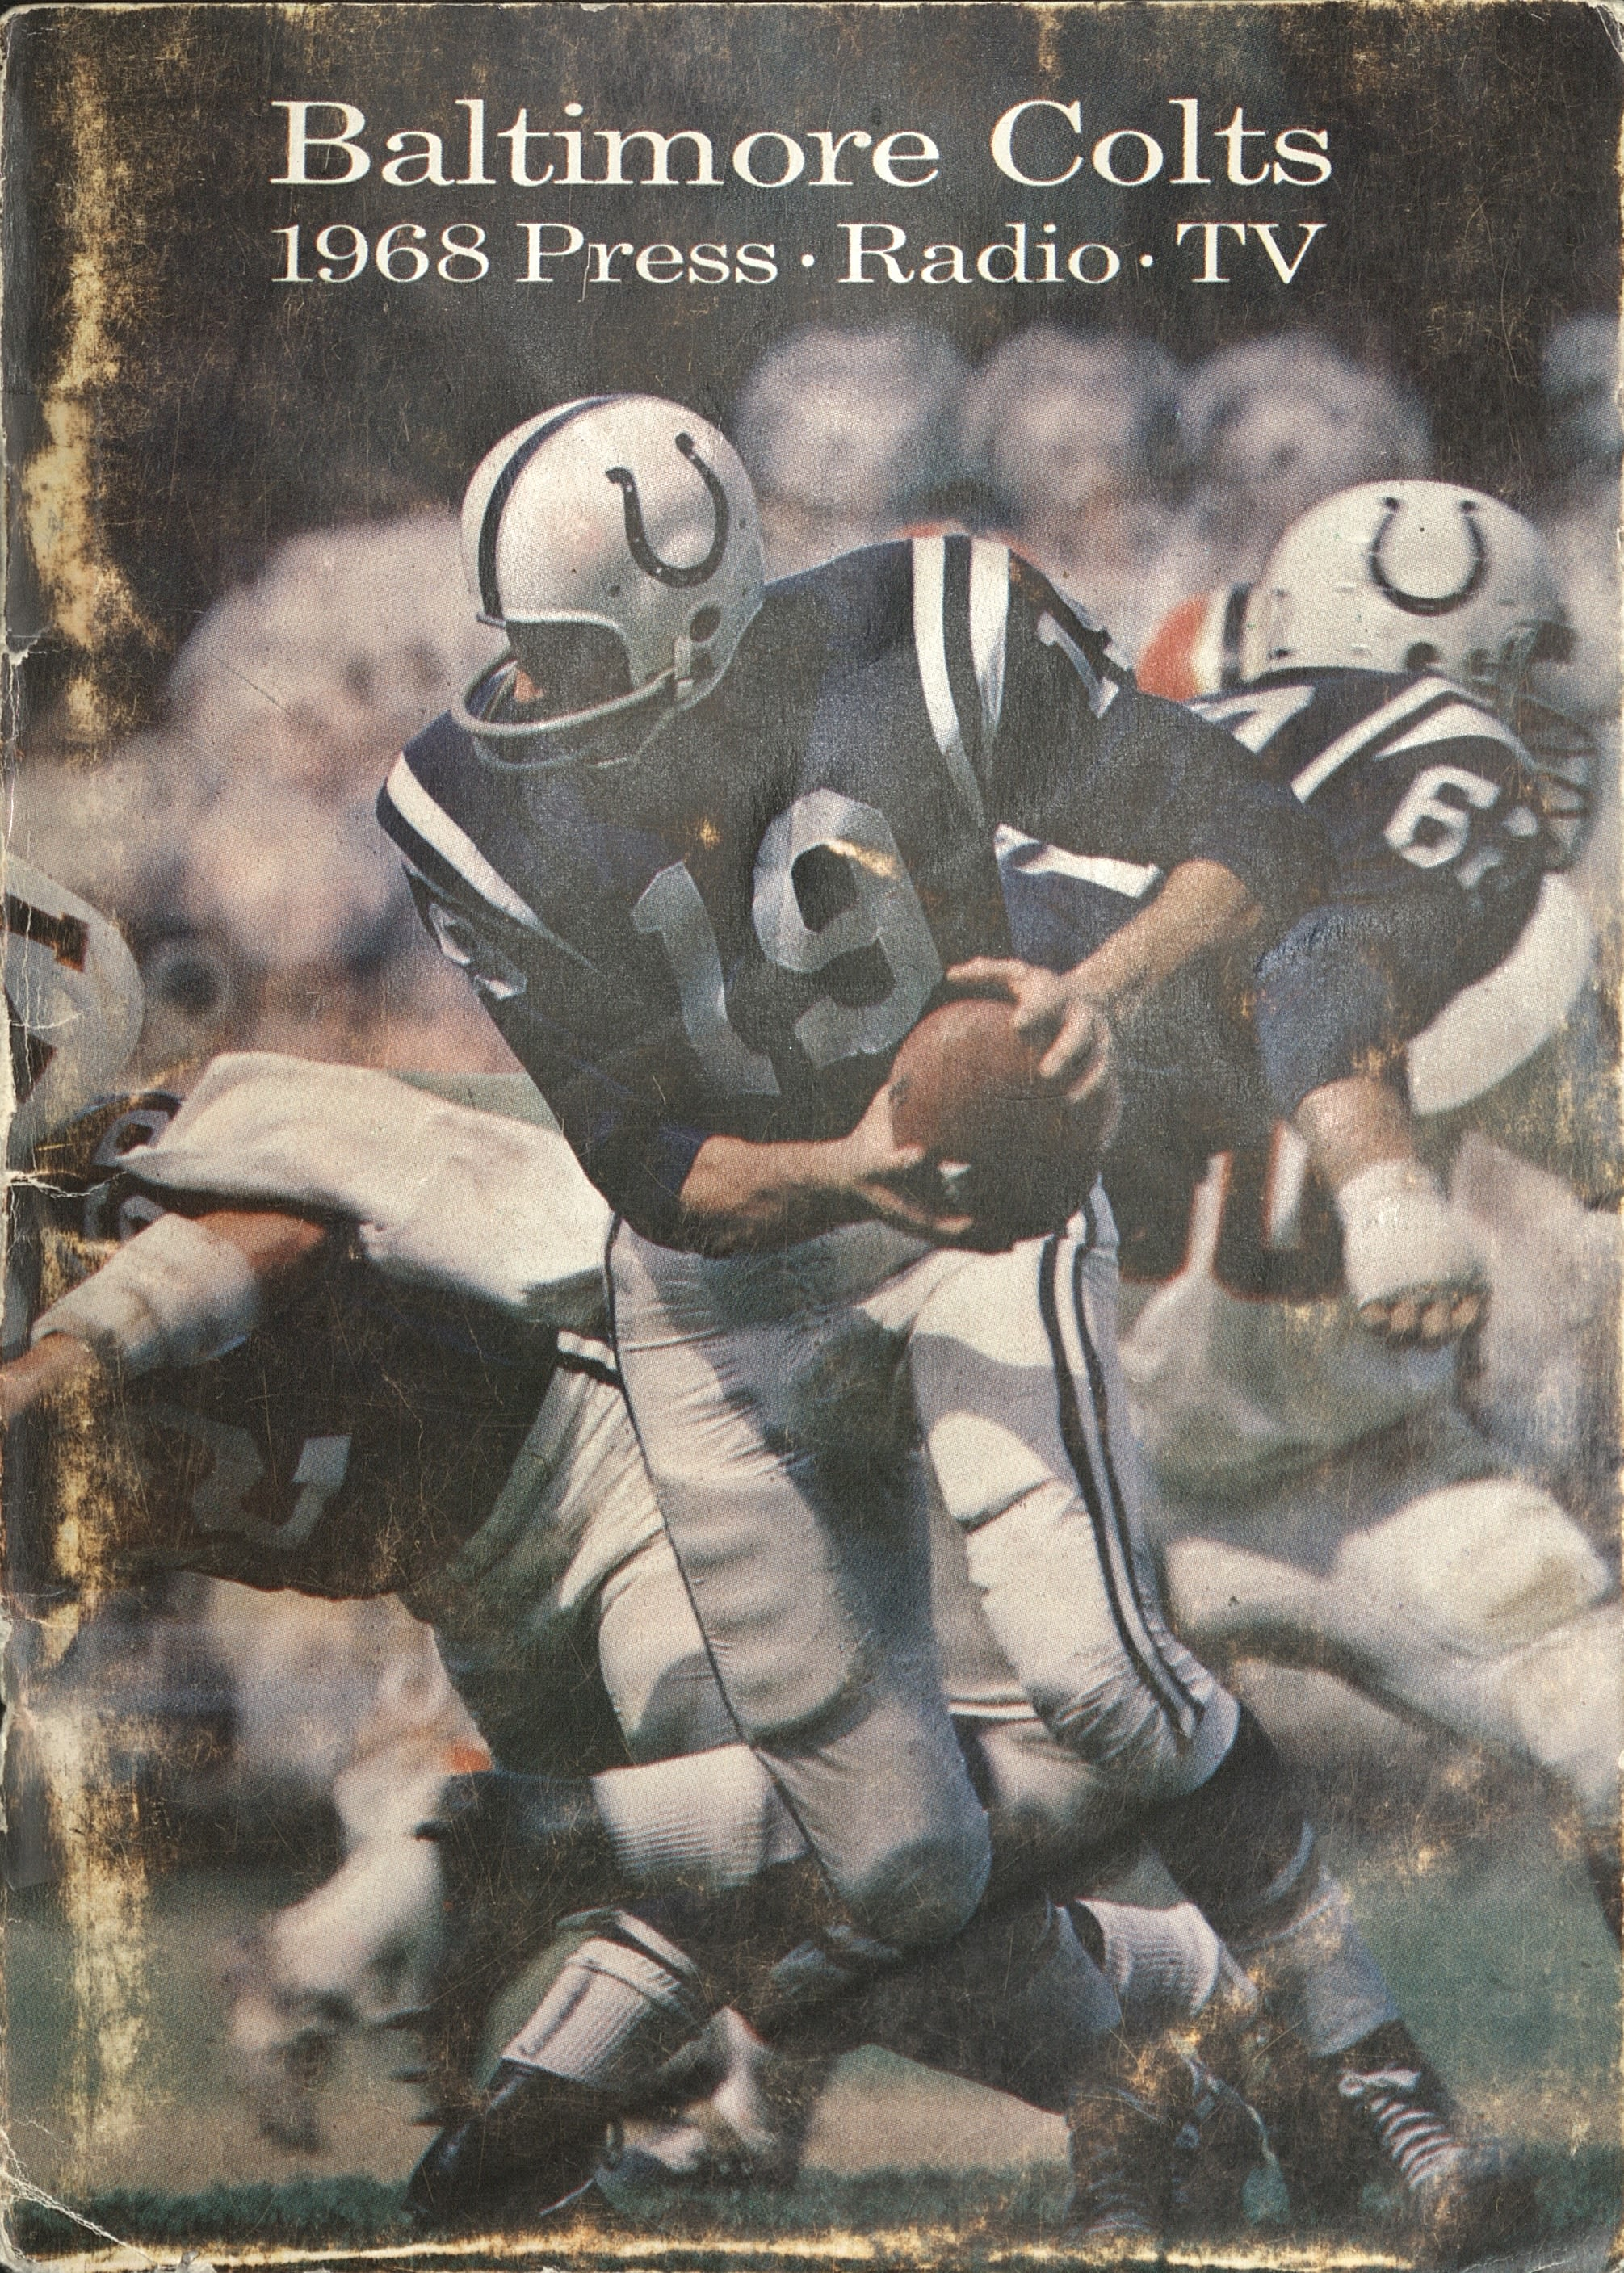 COLTS_1968_Cover